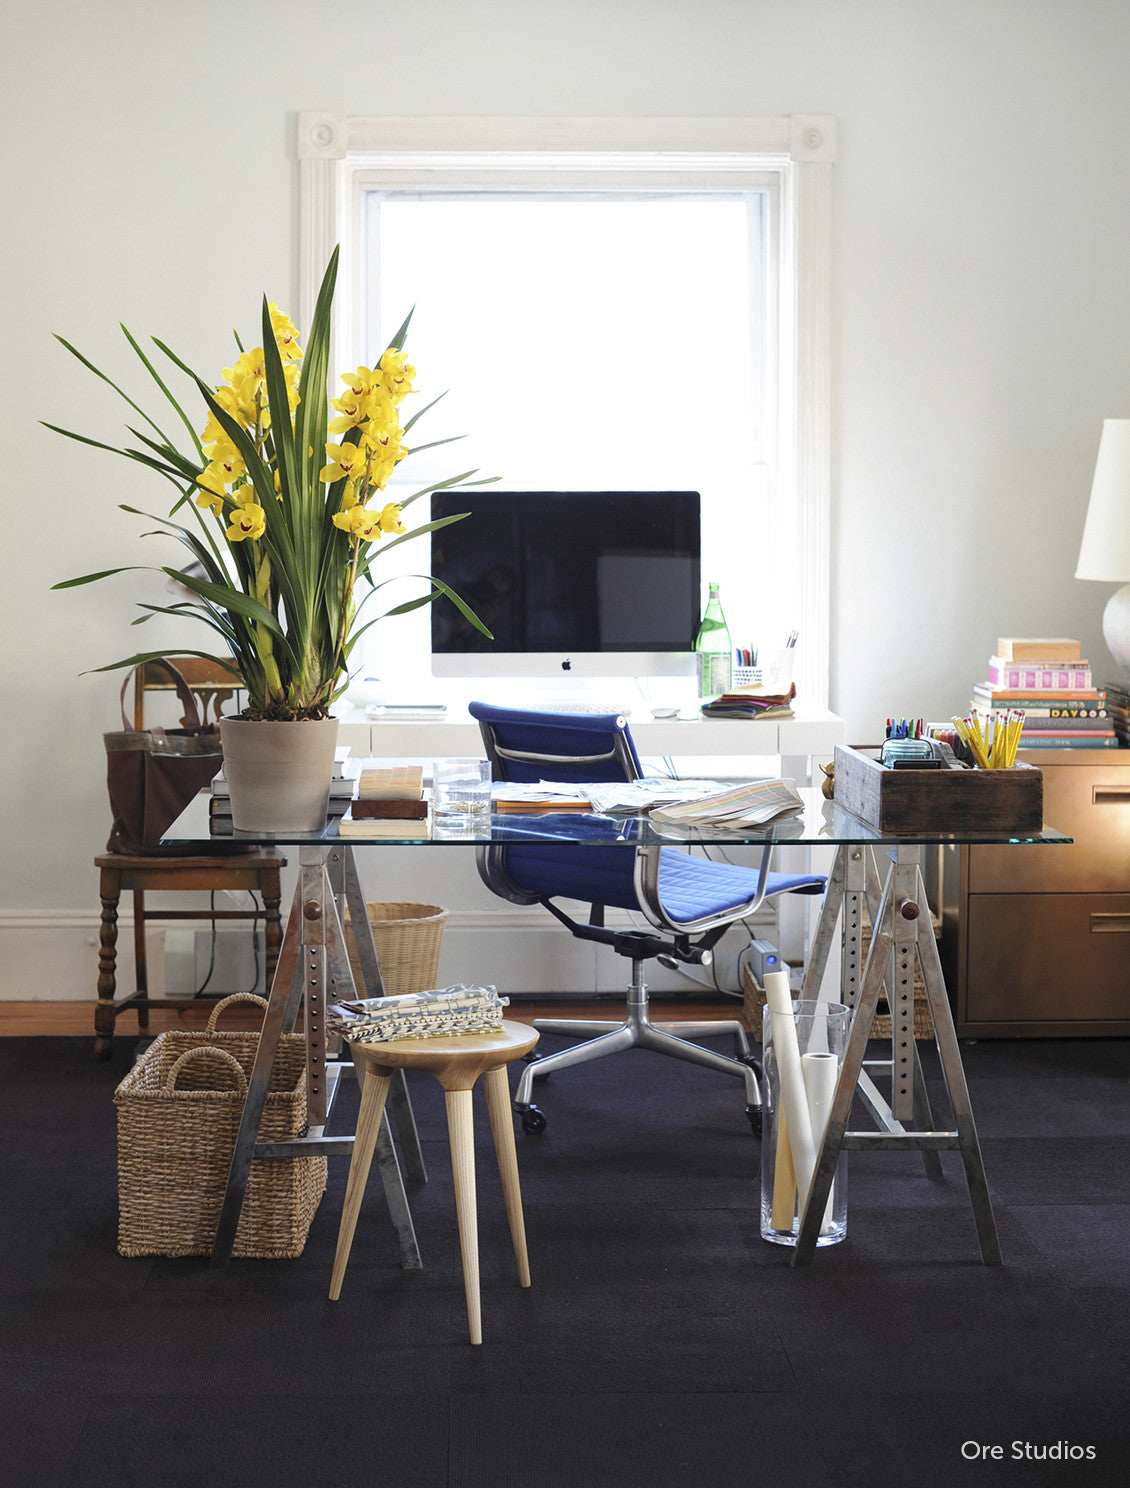 Coventry Stool by Studio DUNN in an office with a glass desktop and sawhorse legs, yellow flowers, and blue swivel chair in a space designed by Ore Studios.